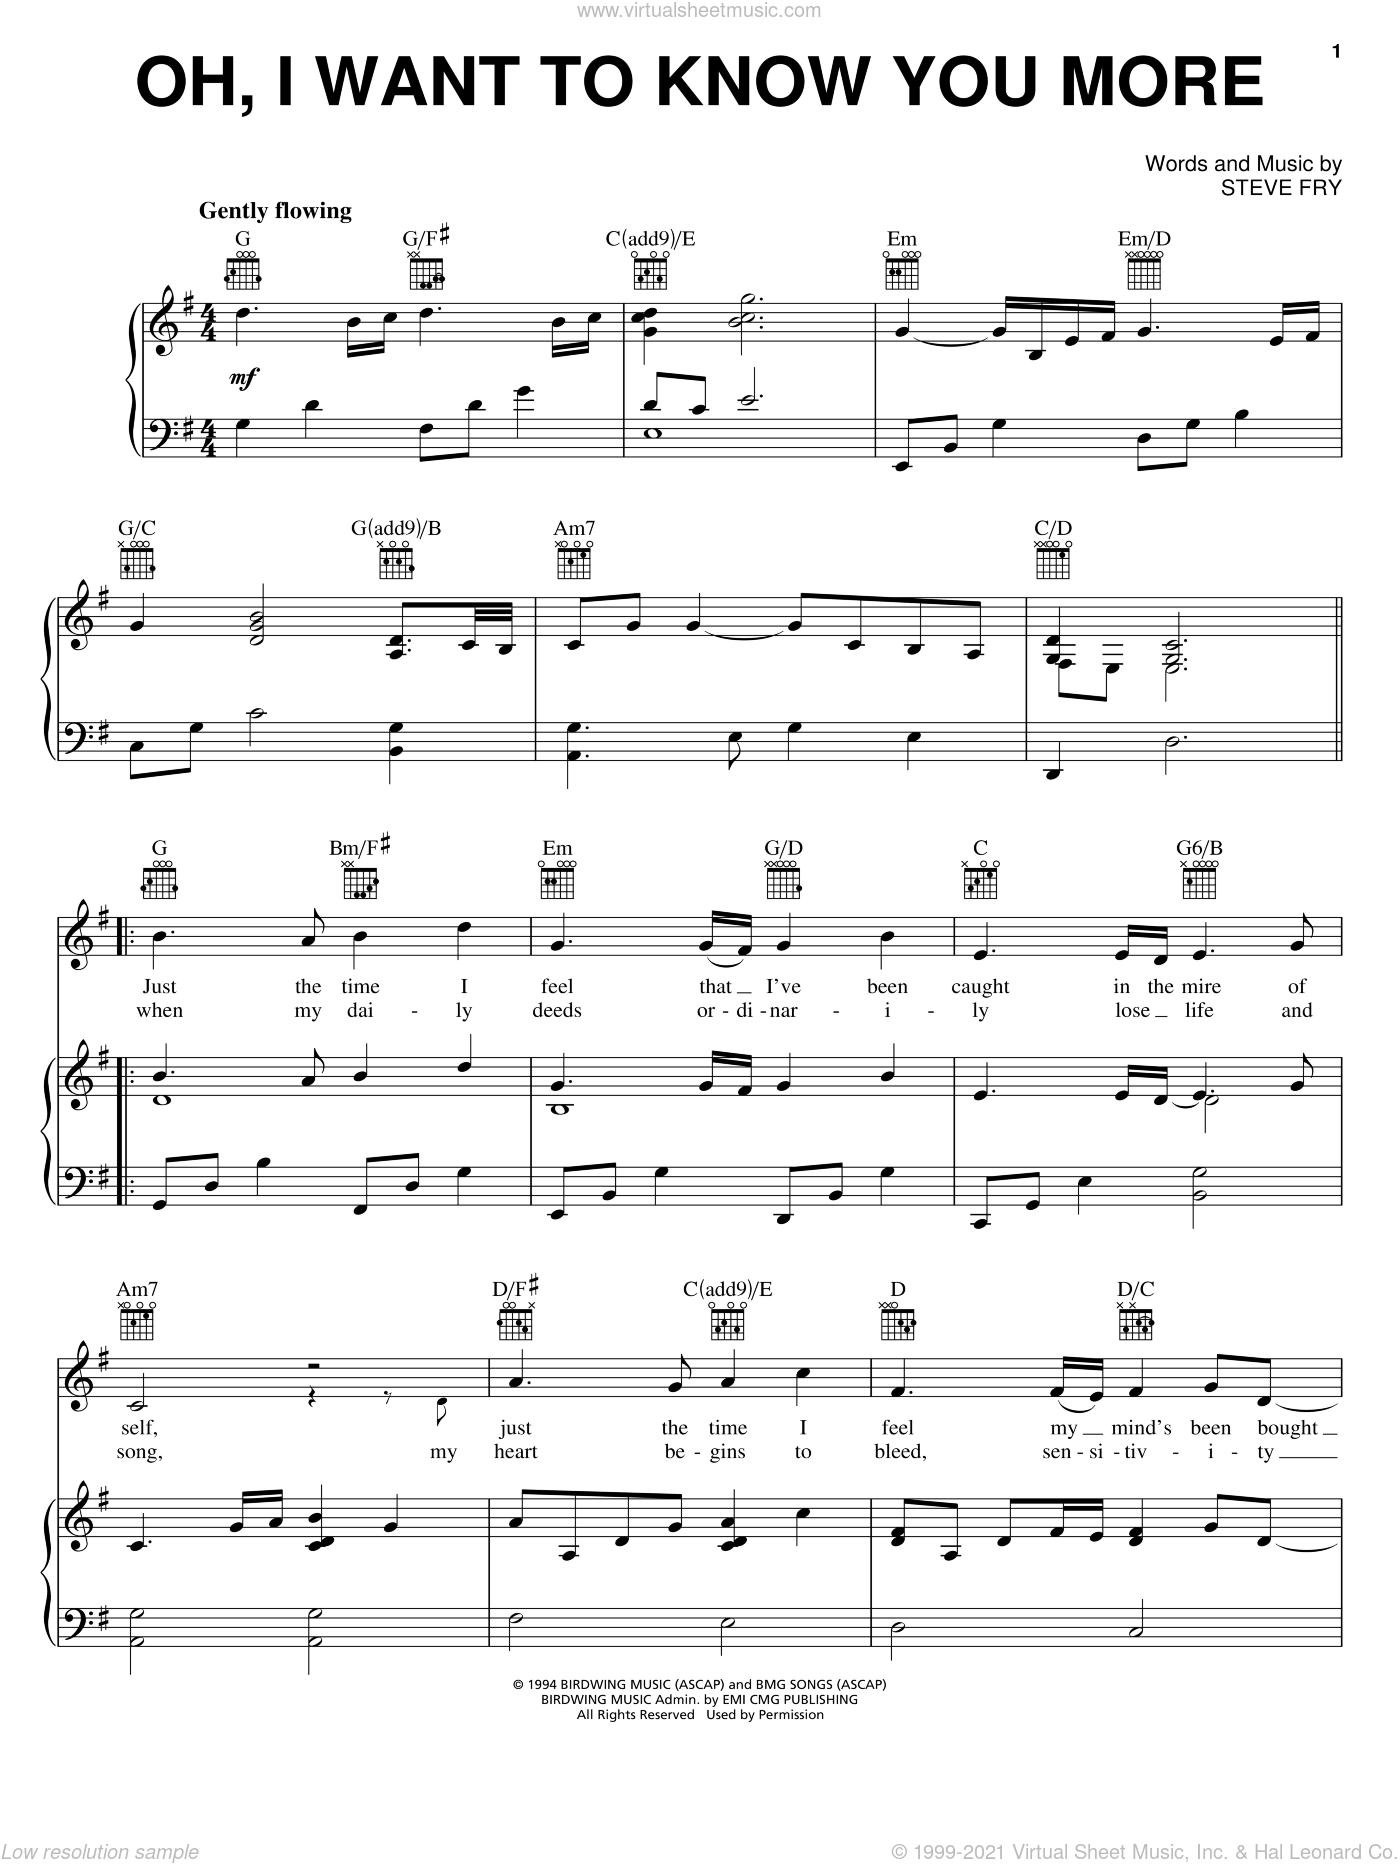 Oh, I Want To Know You More sheet music for voice, piano or guitar by Steve Fry